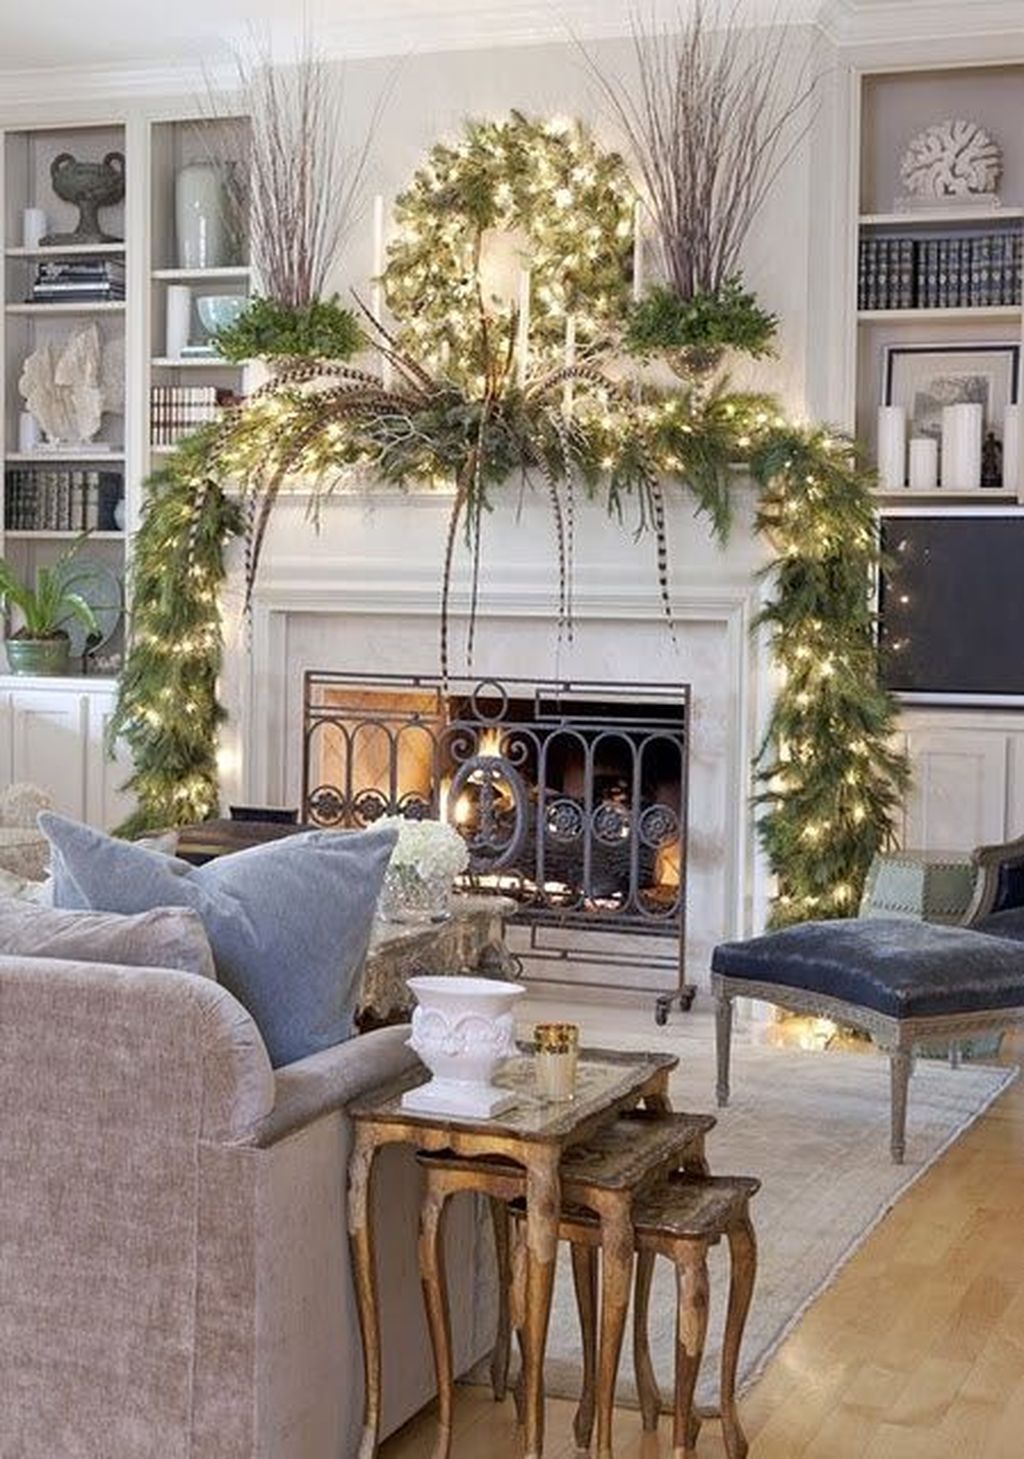 Beautiful Christmas Interior Design Ideas You Never Seen Before 44